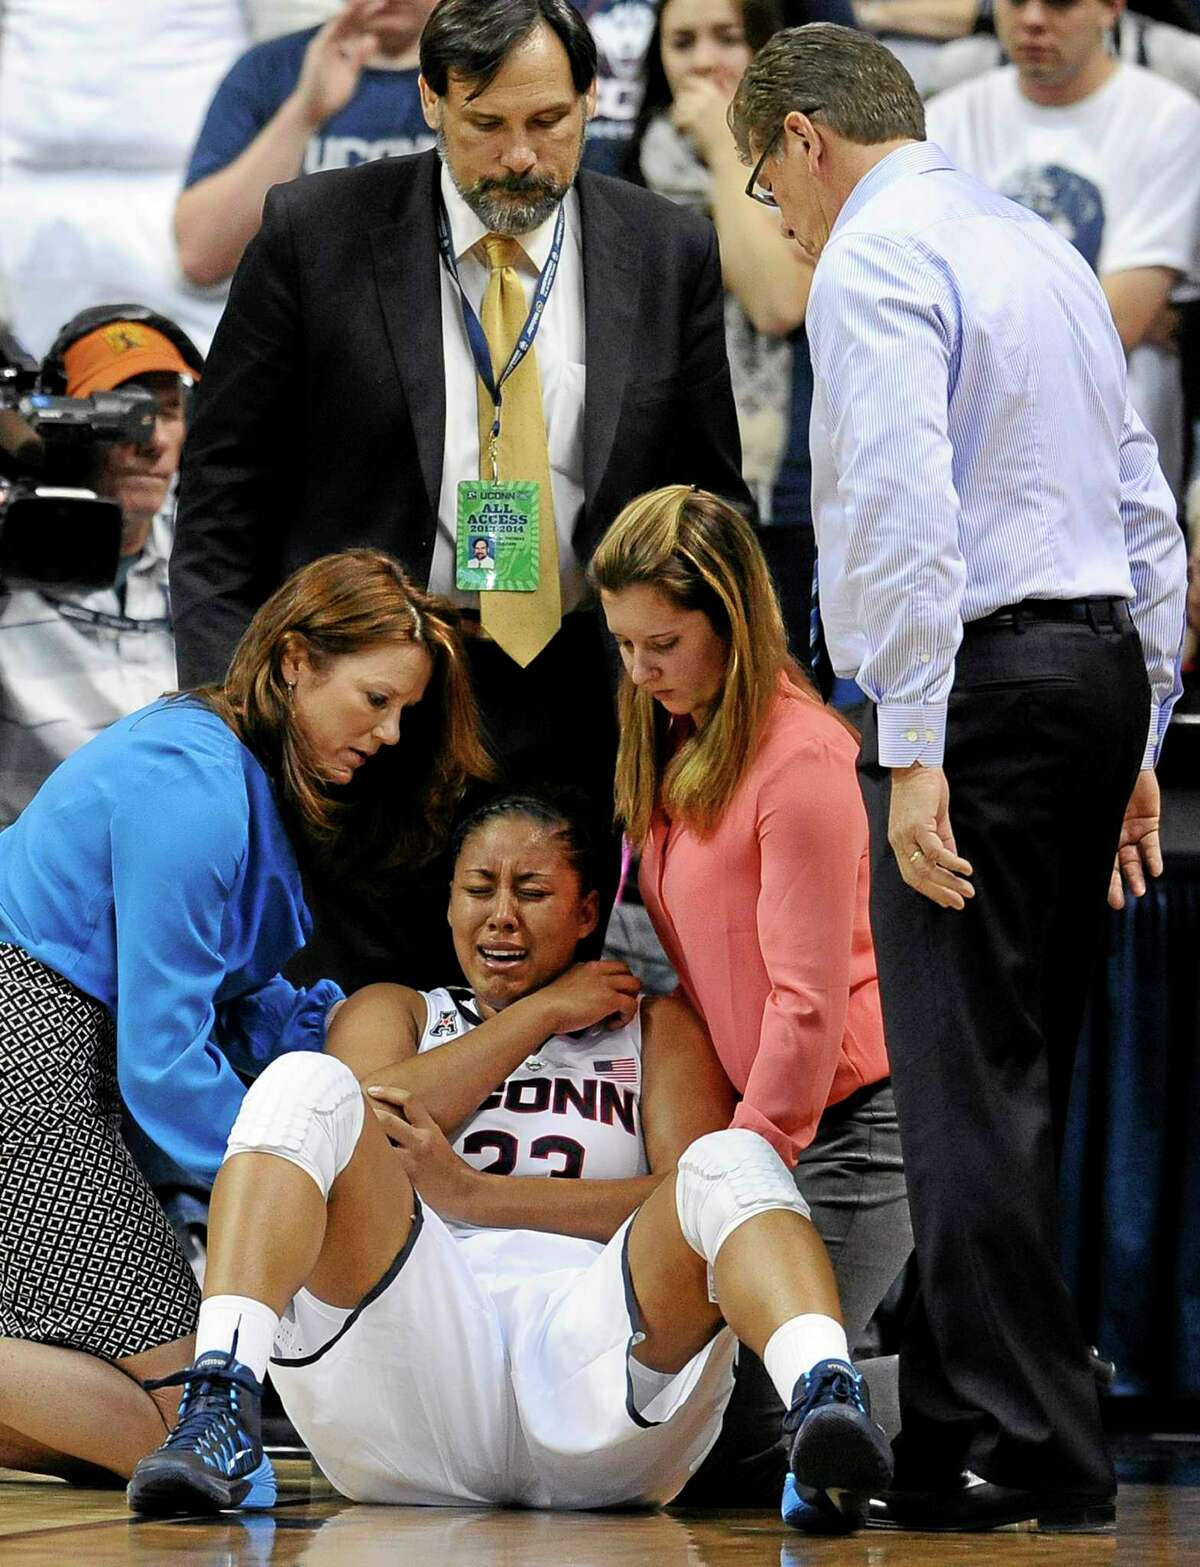 Connecticut head coach Geno Auriemma, right, looks at injured player Kaleena Mosqueda-Lewis, center, as she is tended to by assistant athletic trainer Rosemary Ragle, left, Team Physician Dr. Thomas Trojian, top center, and student athletic trainer Lauren Sheldon, second from right, during the second half of an NCAA college basketball game, Monday, Nov. 11, 2013, in Storrs, Conn. Mosqueda-Lewis left the game with an injury to her right elbow. Connecticut won 76-57. (AP Photo/Jessica Hill)